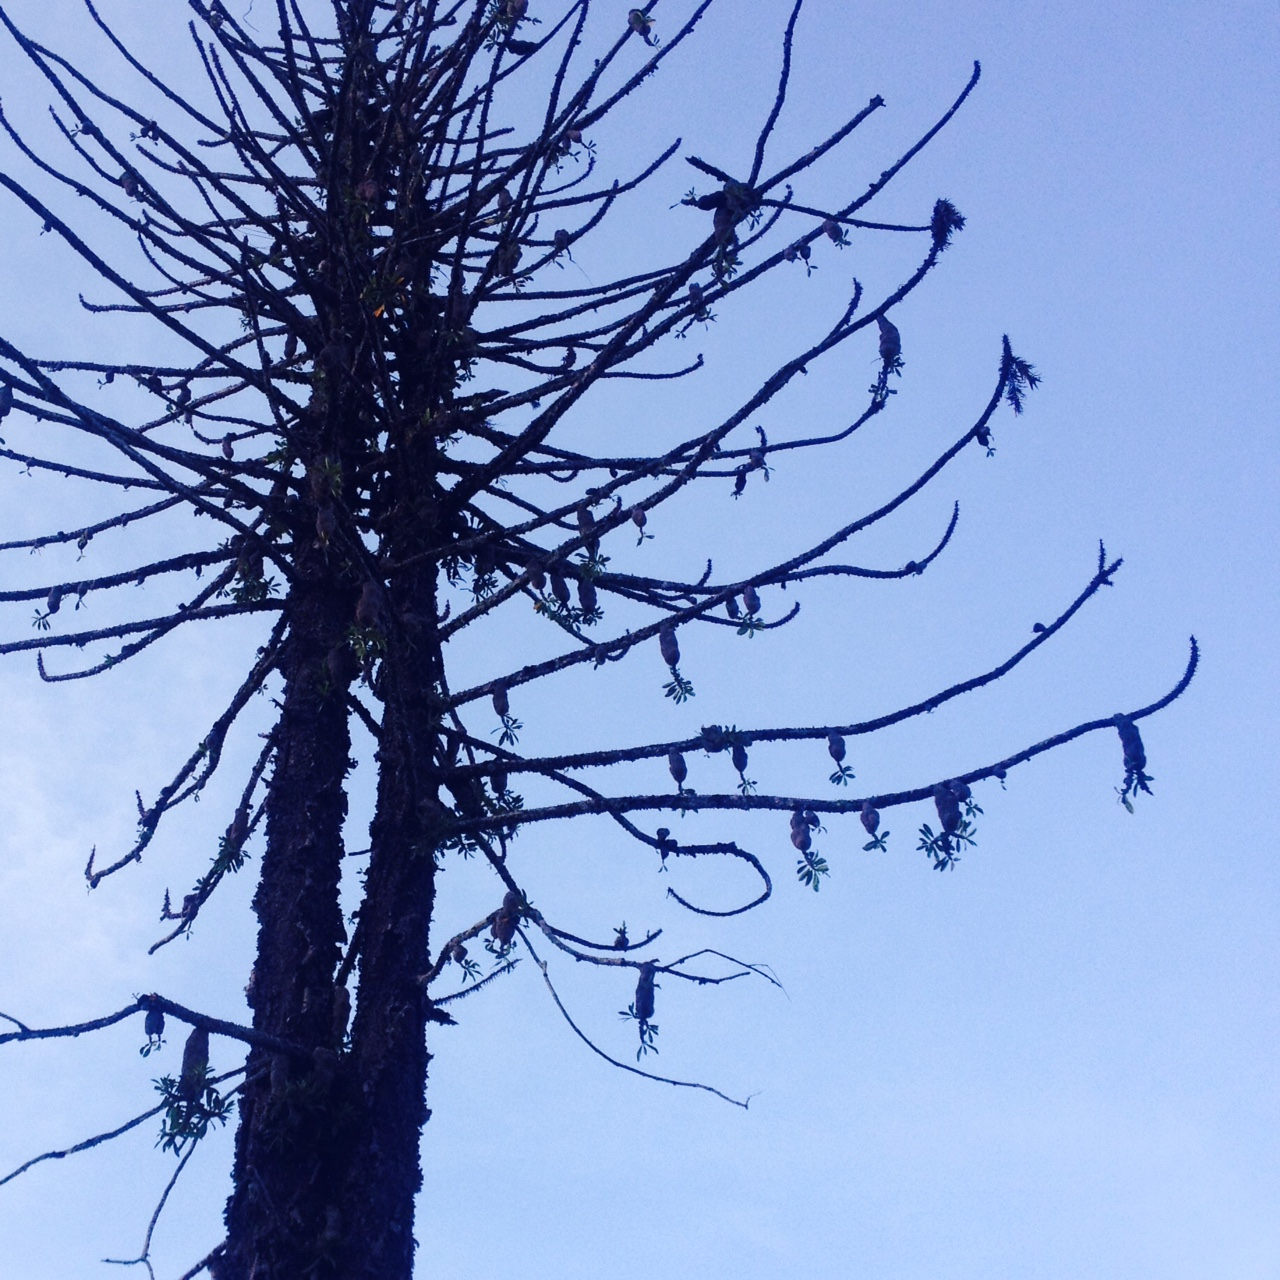 I was amazed at the number of orchids that had made their home in this dead pine tree.